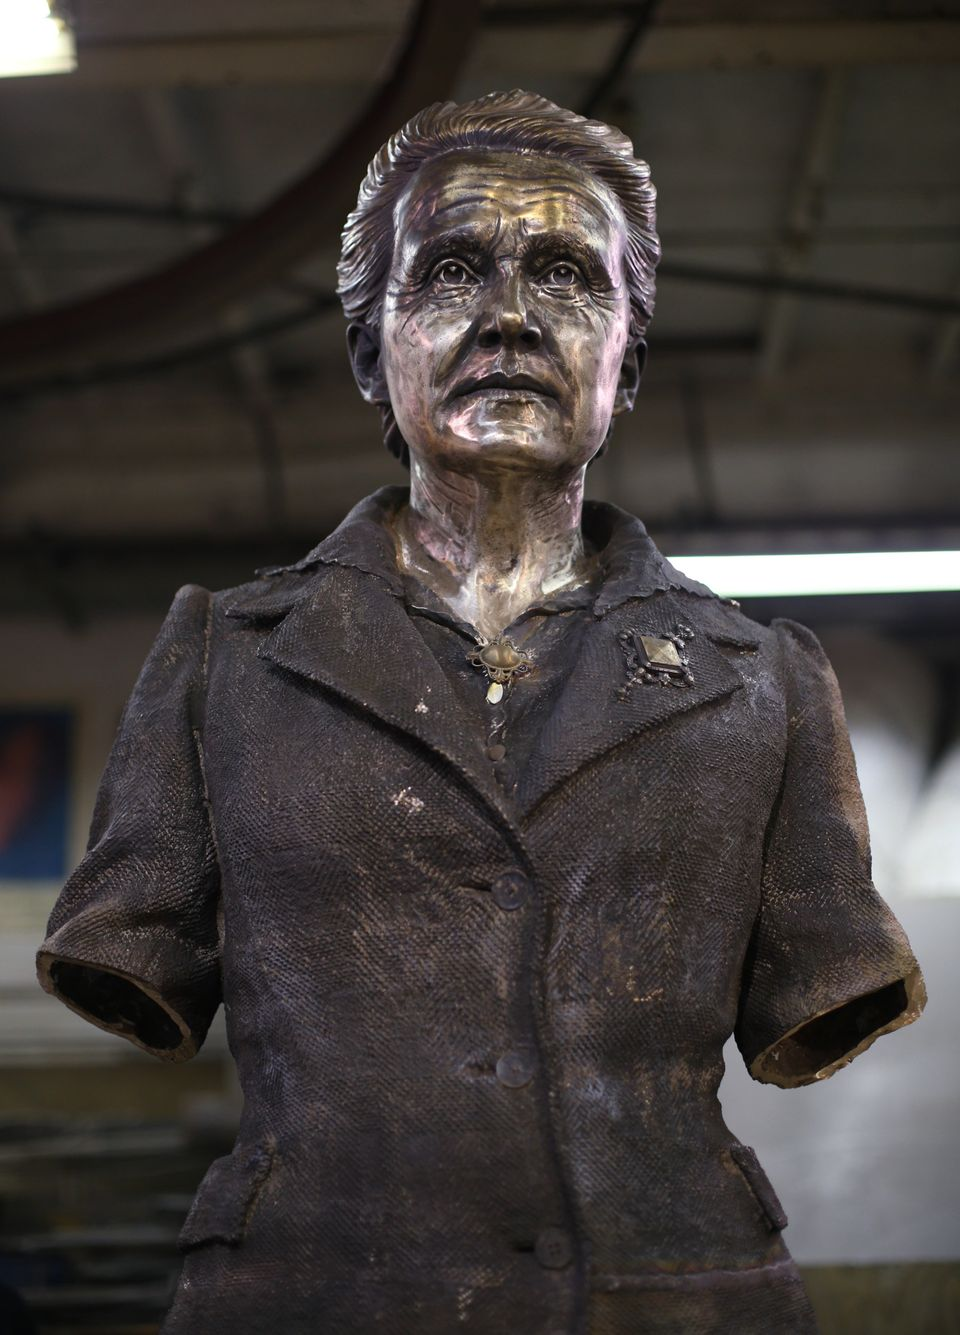 The statue before the finishing touches have been added by artist Gillian Wearing